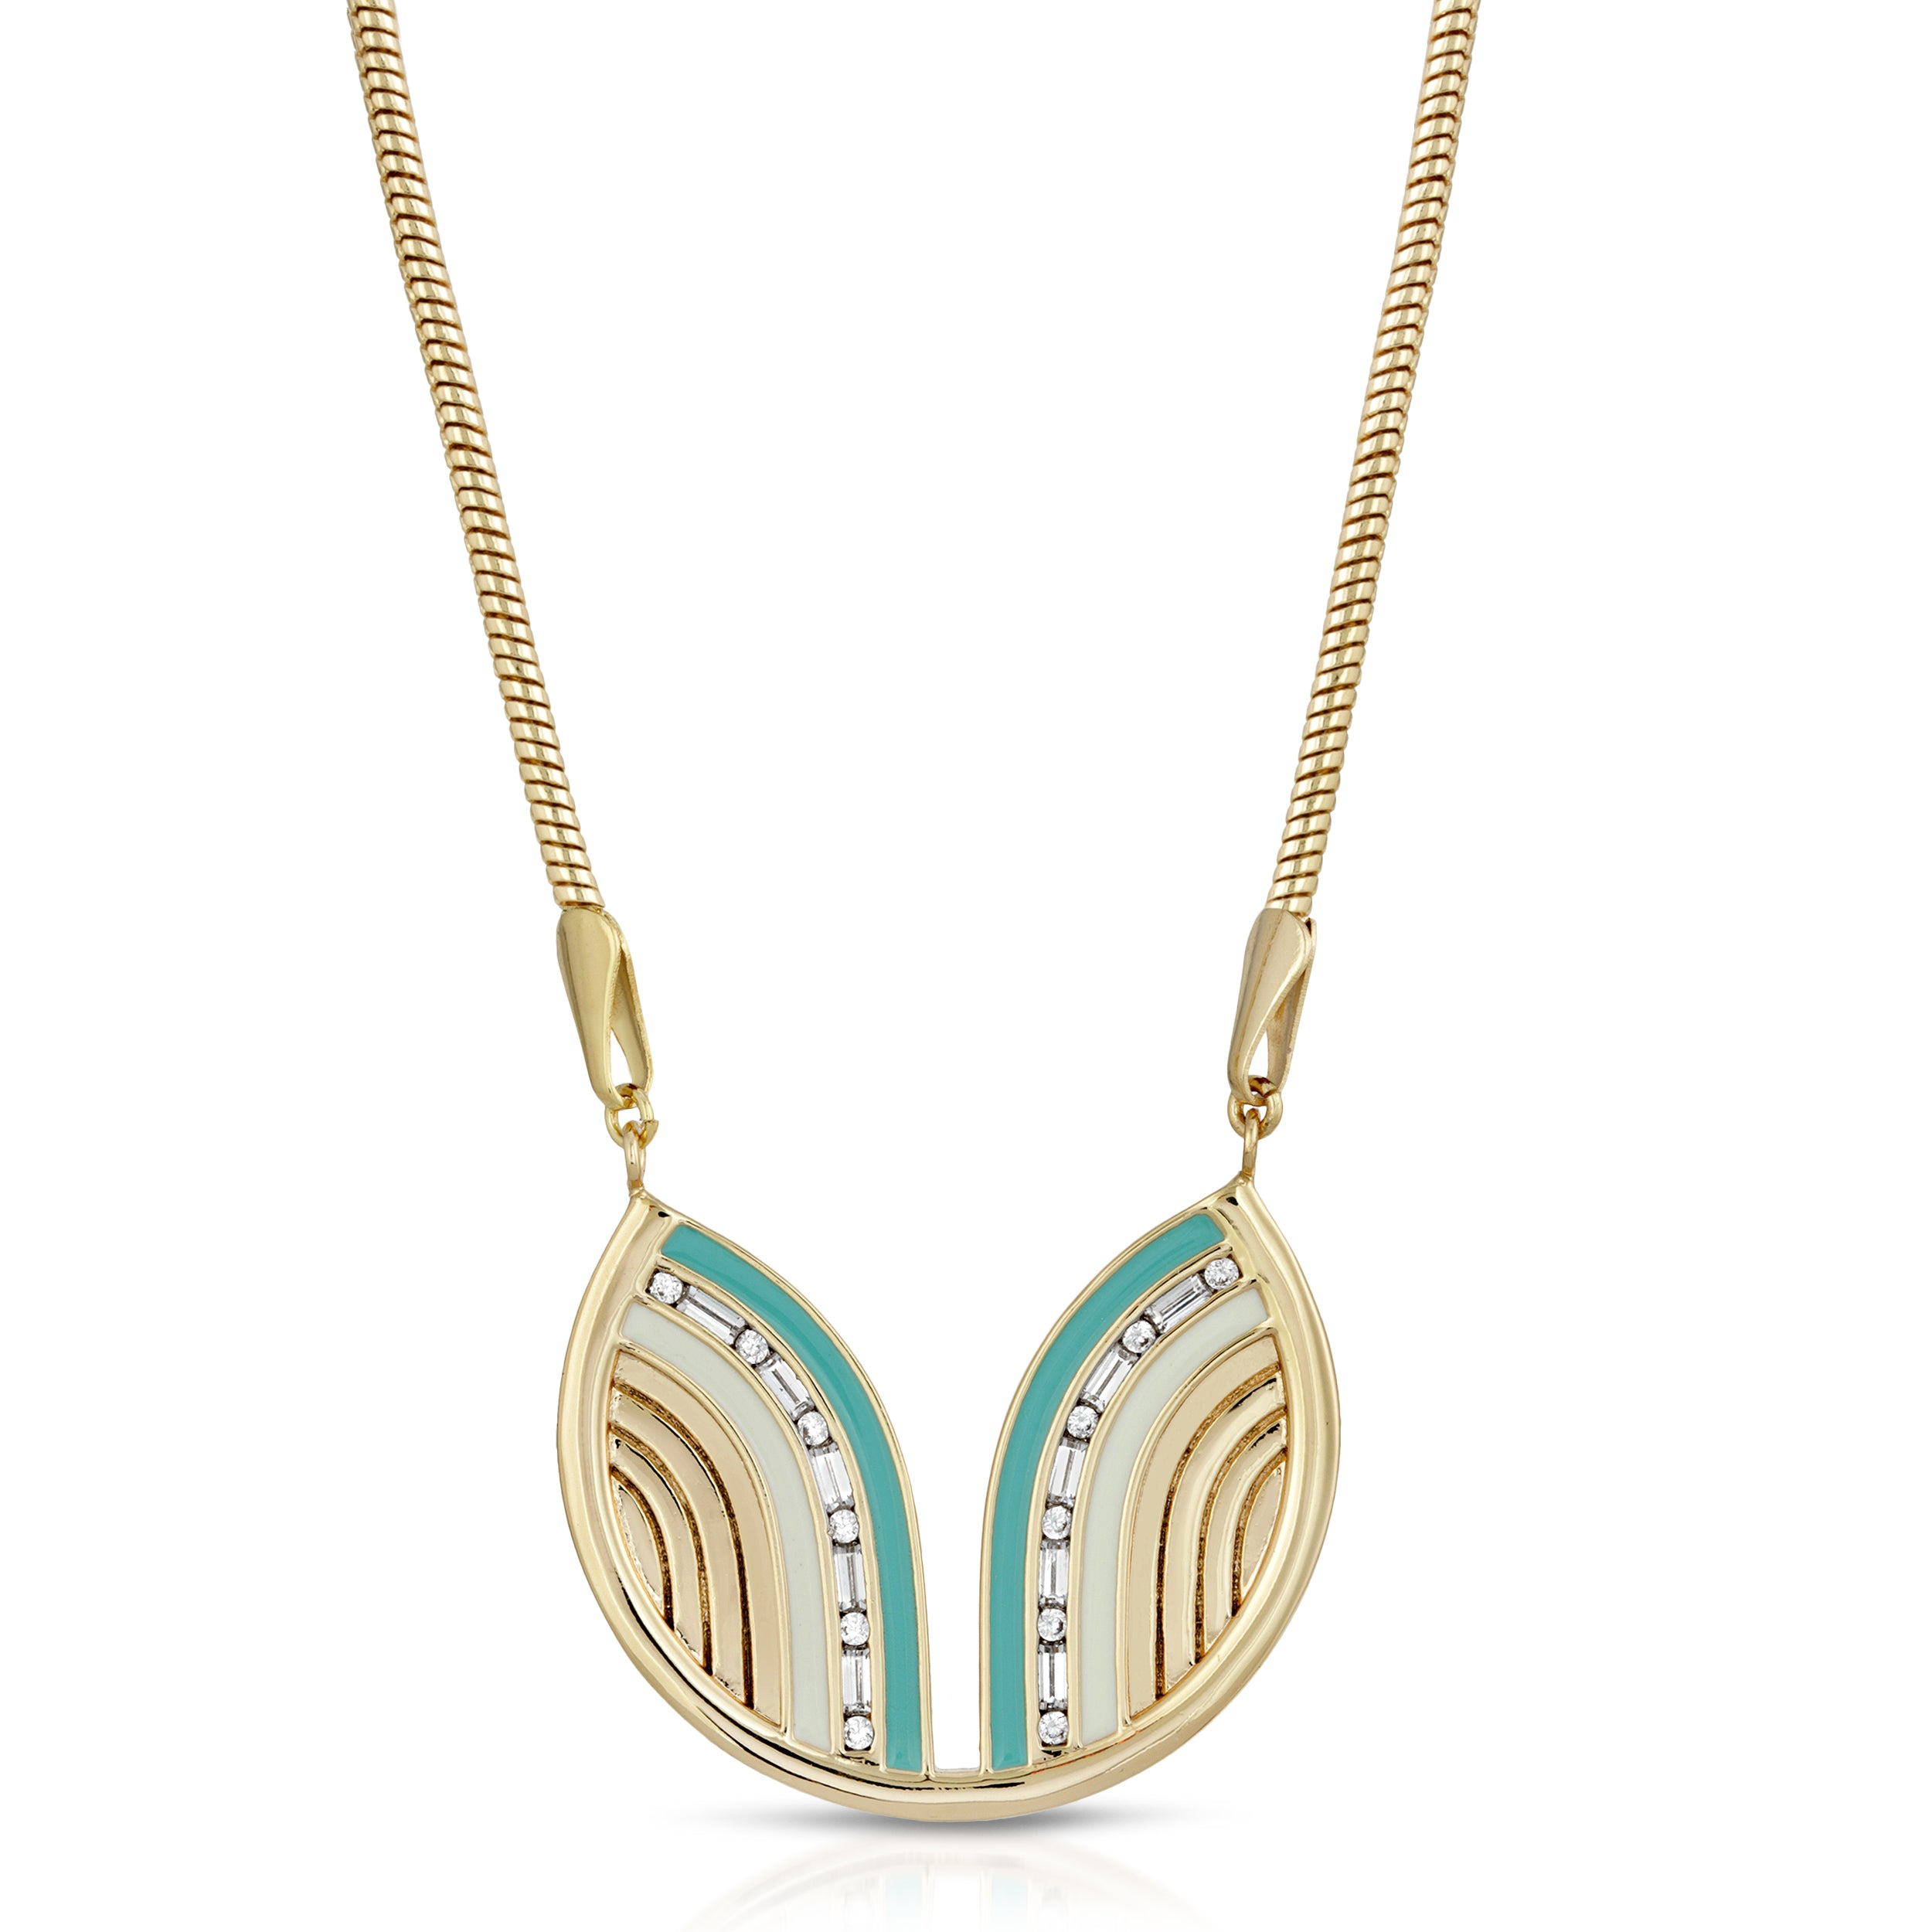 South Beach Necklace - Turquoise/White